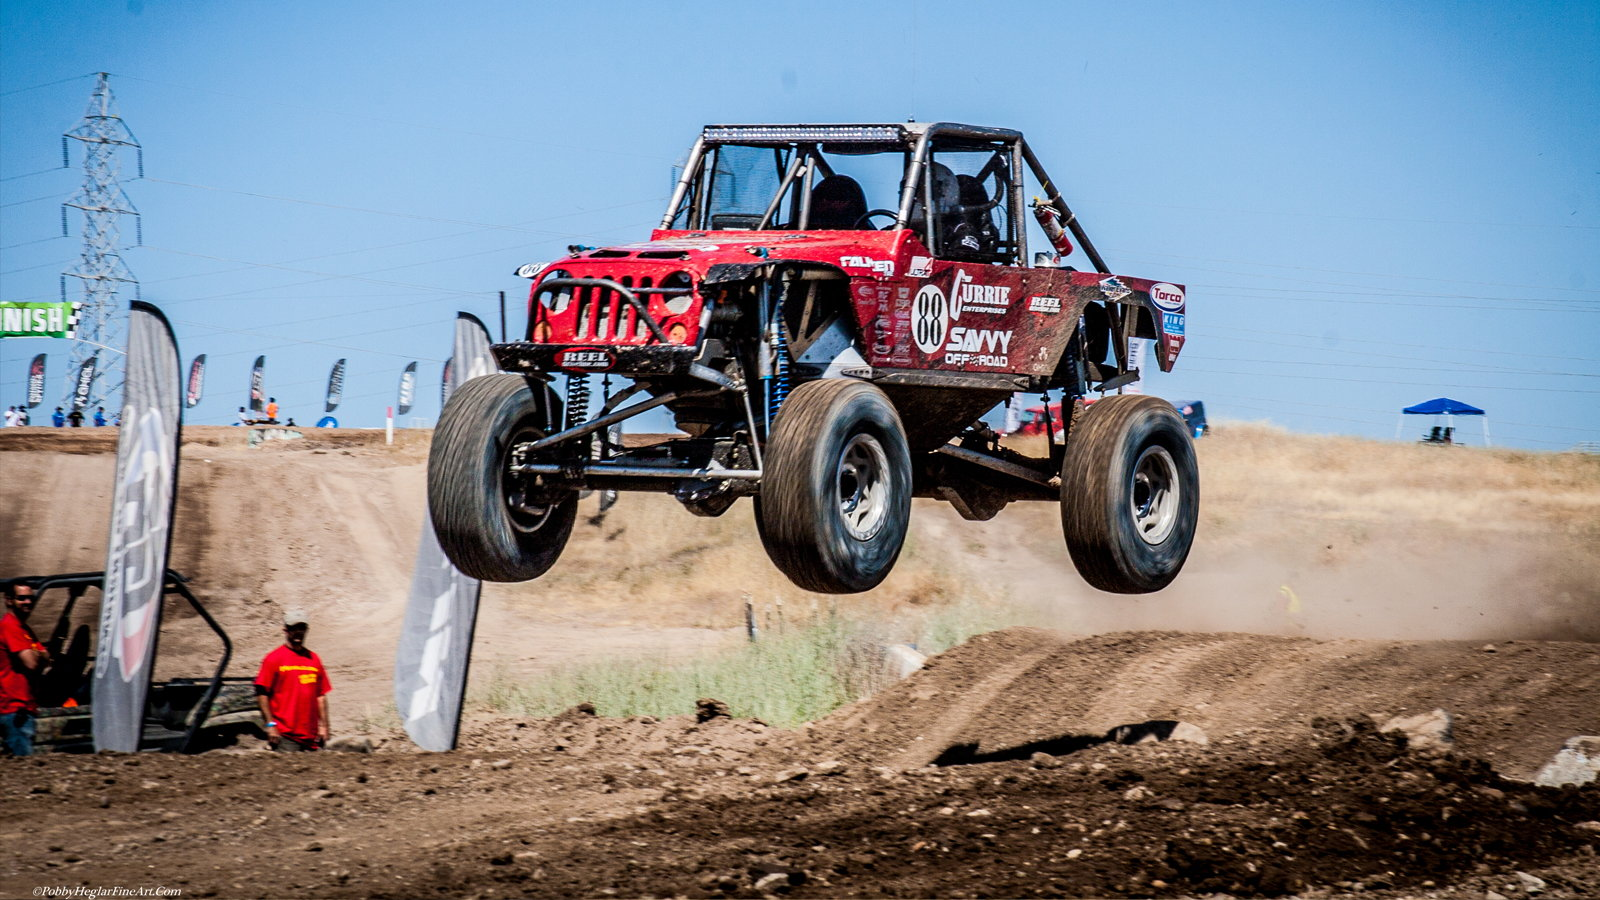 Jeep Modifications For the Off-Road Racing Circuit